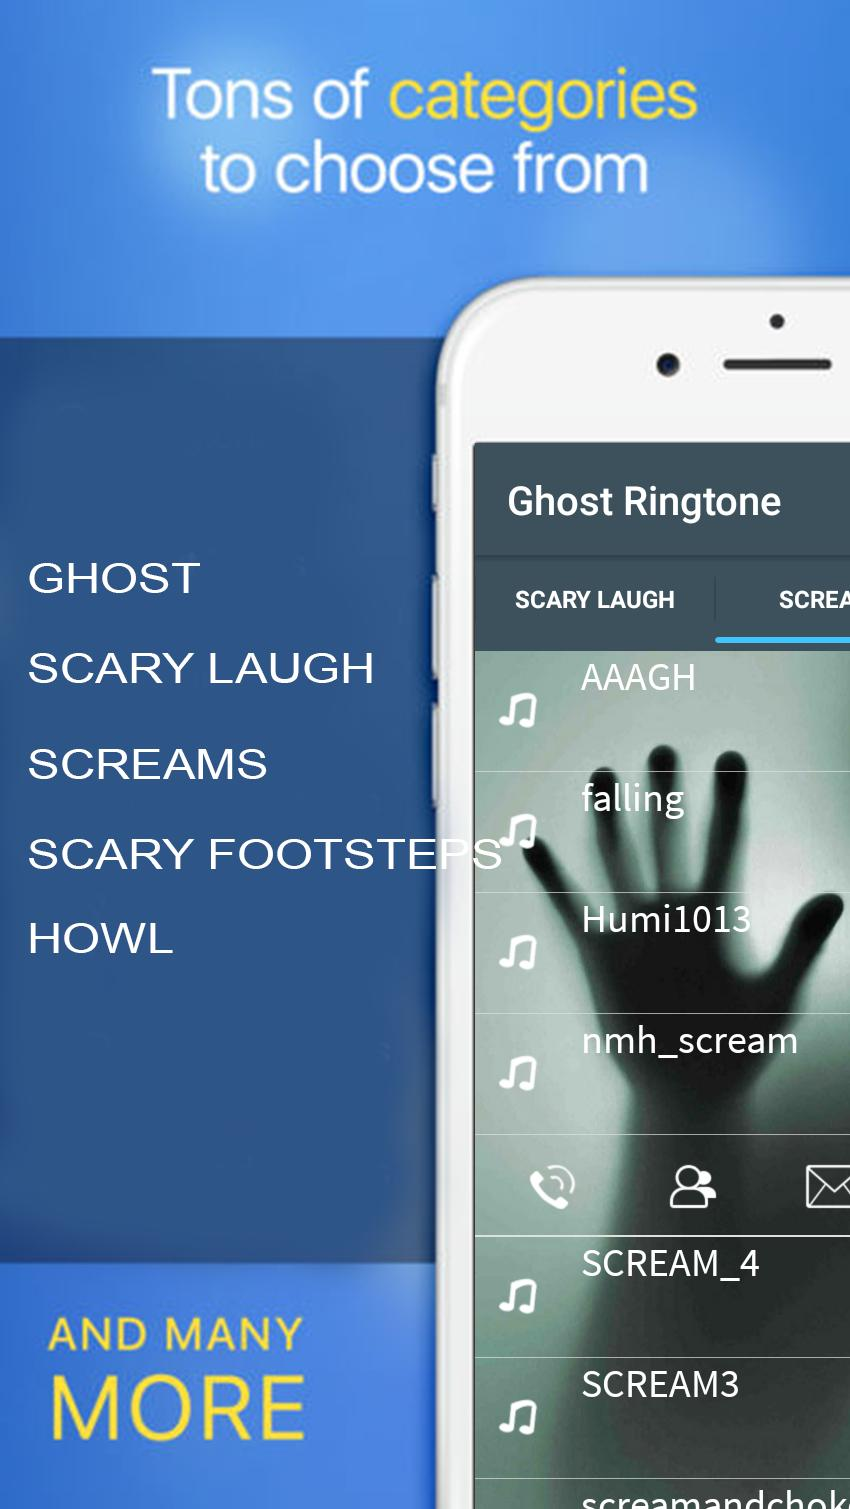 Horror ringtones - Ghost sound for Android - APK Download